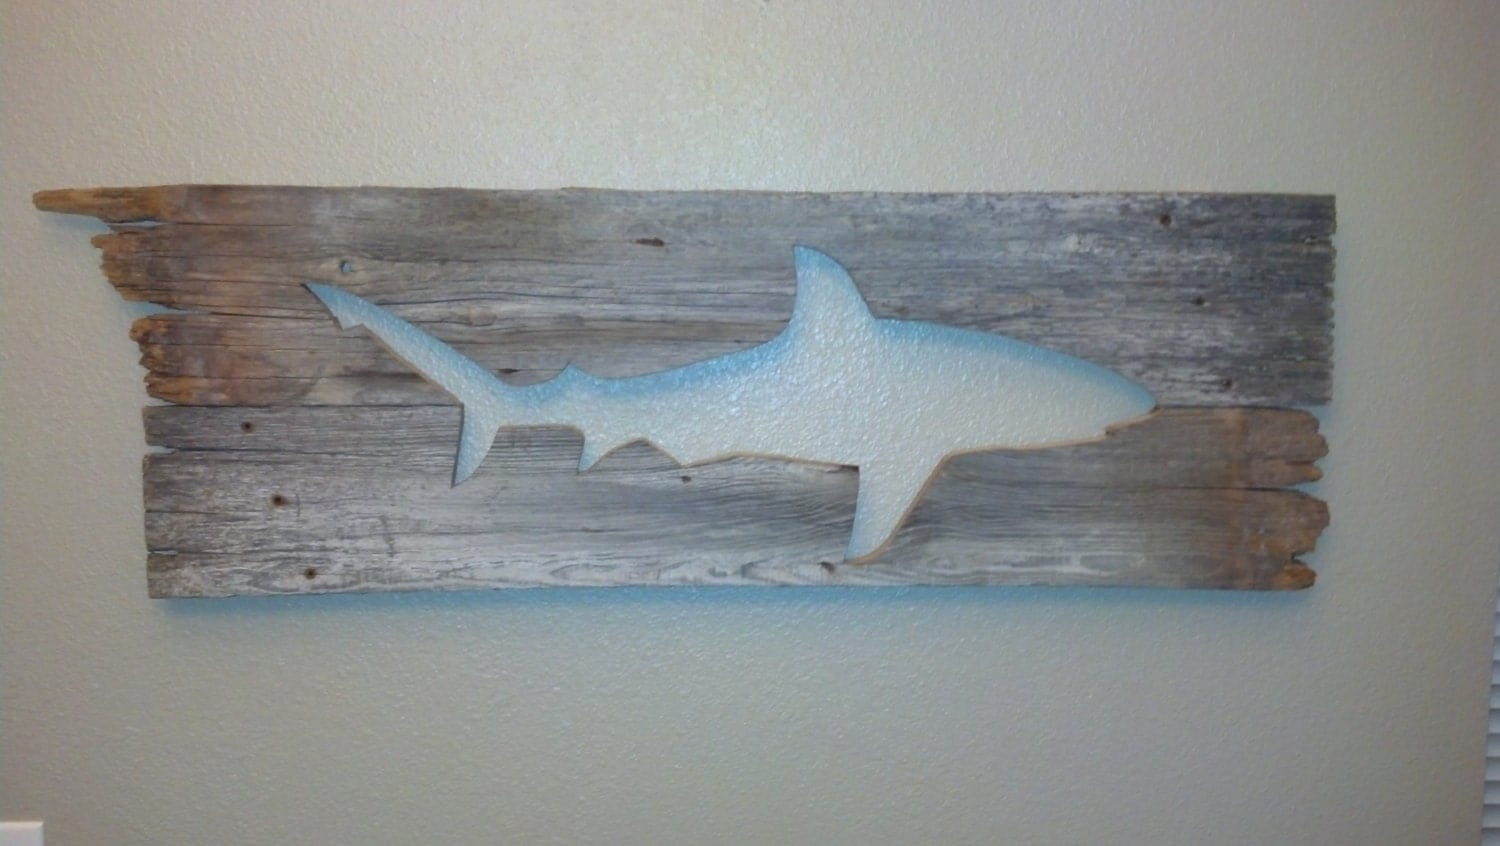 Wall Hanging Artwork : Galapagos shark barn wood wall art hanging decor